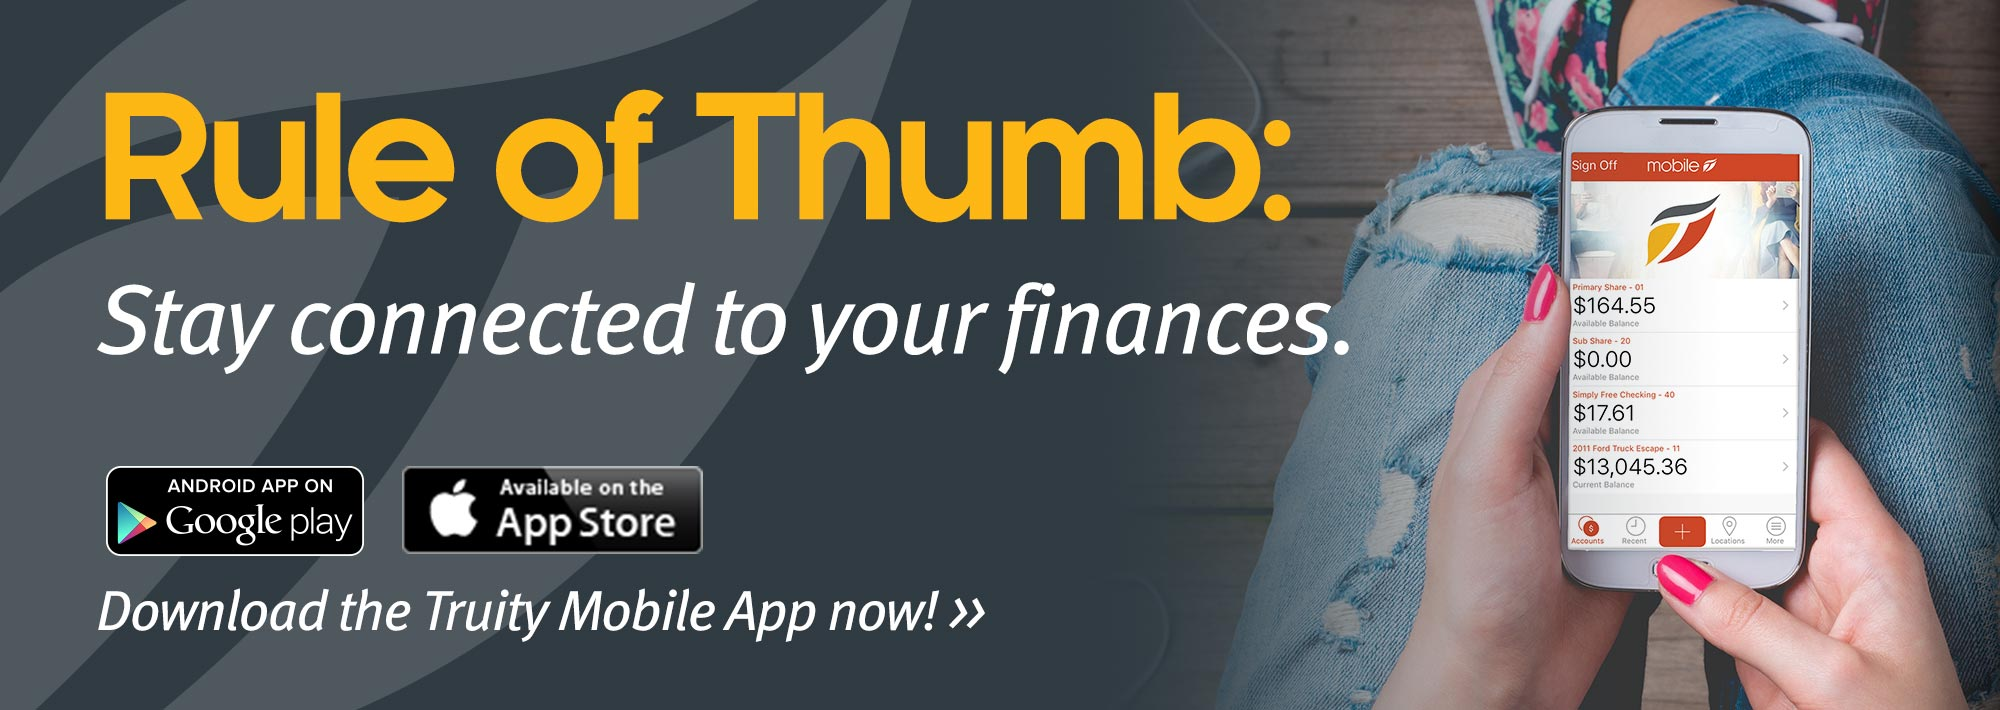 Rule of Thumb: Stay connected to your finances. Download the Truity Mobile App now!